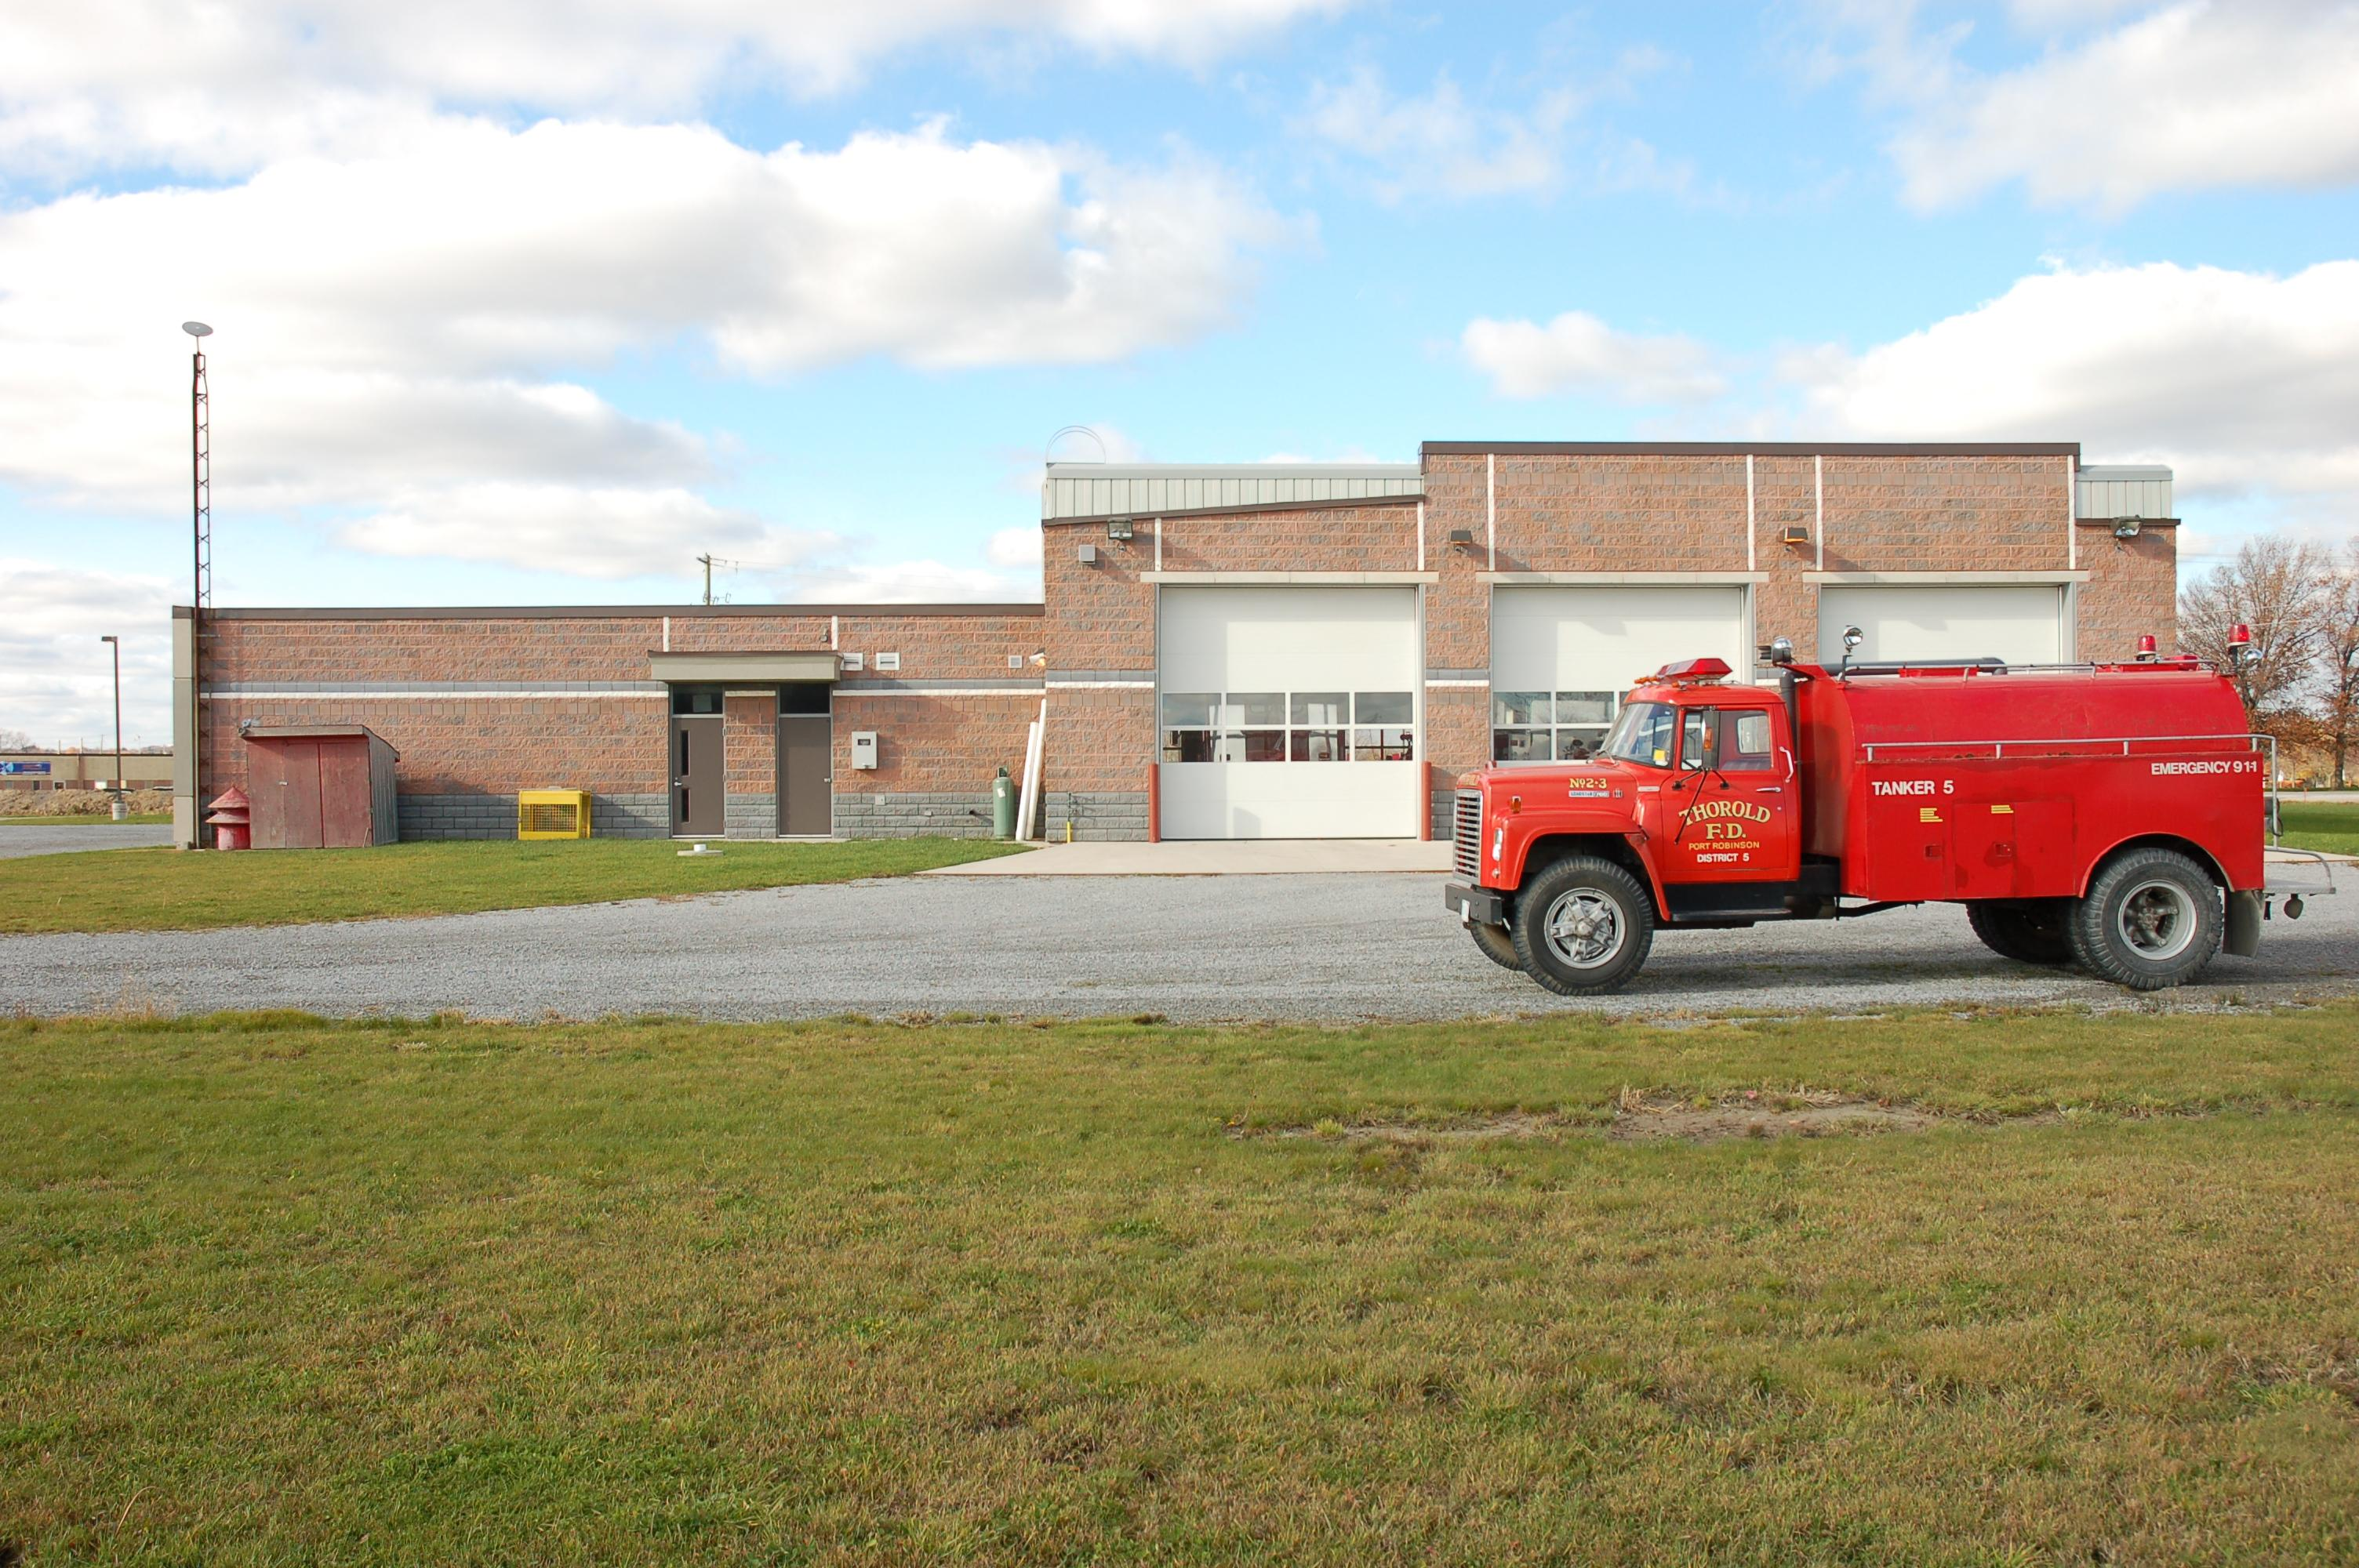 Thorold Fire Station No. 4